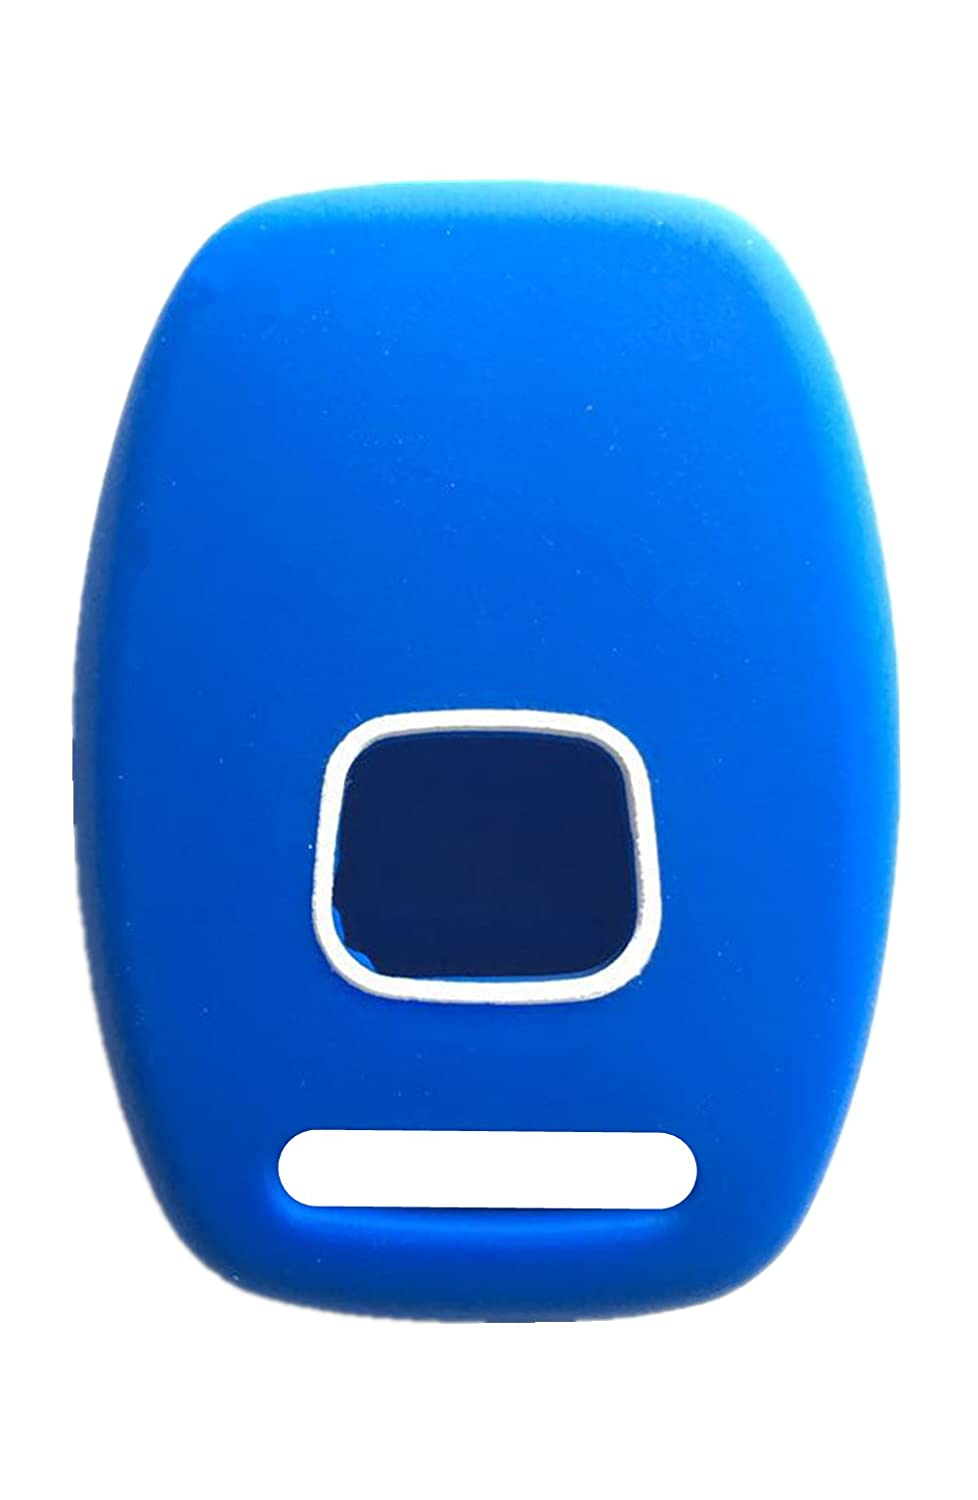 Rpkey Silicone Keyless Entry Remote Control Key Fob Cover Case protector For Honda Accord Accord Crosstour CR-V Civic Element Pilot OUCG8D-380H-A N5F-S0084A N5F-A05TAA ASD